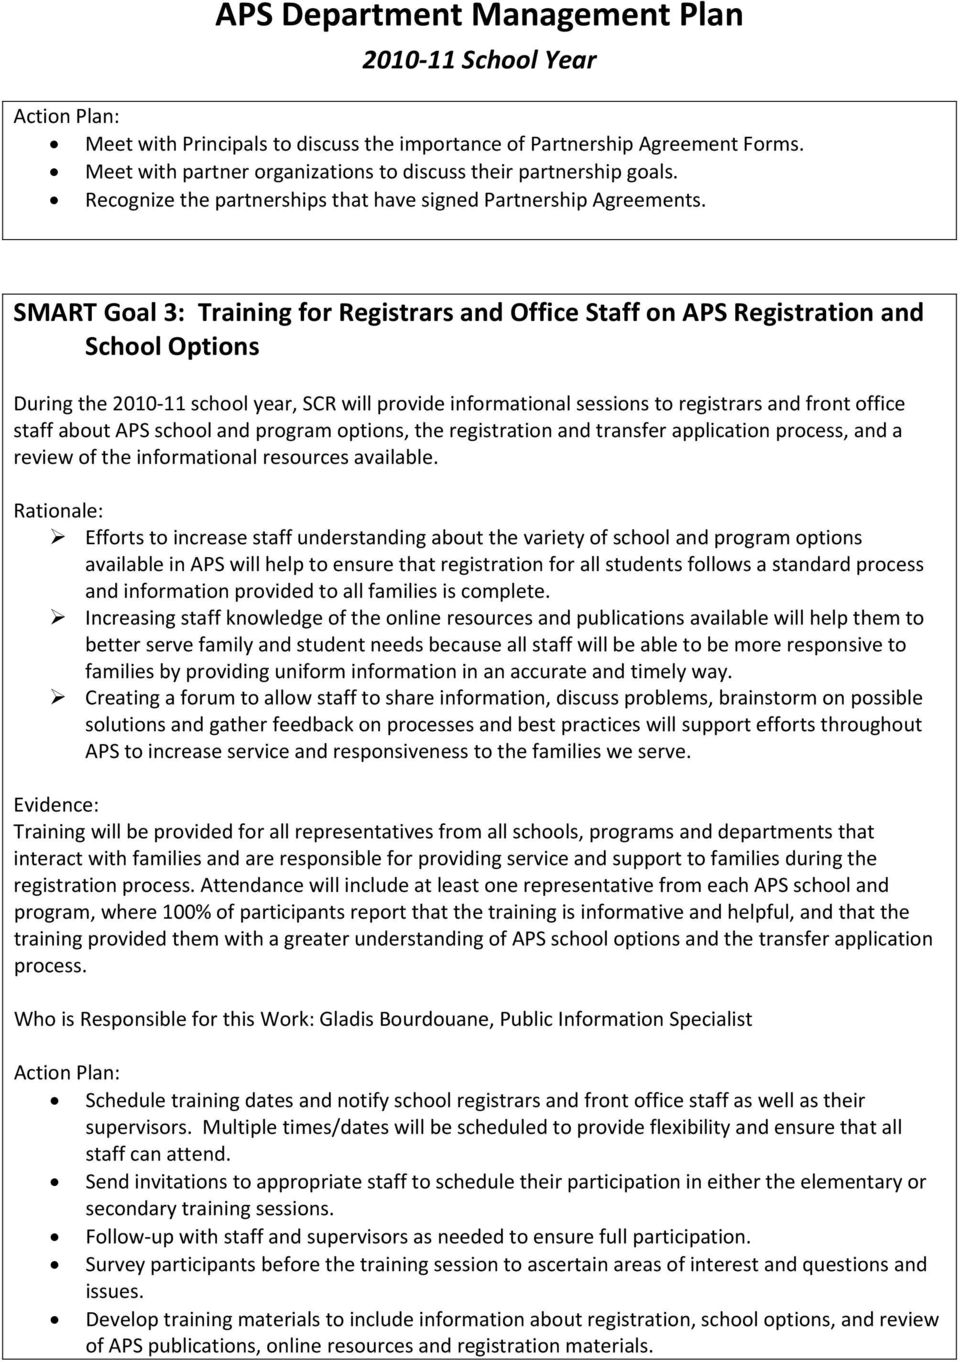 SMART Goal 3: Training for Registrars and Office Staff on APS Registration and School Options During the 2010 11 school year, SCR will provide informational sessions to registrars and front office